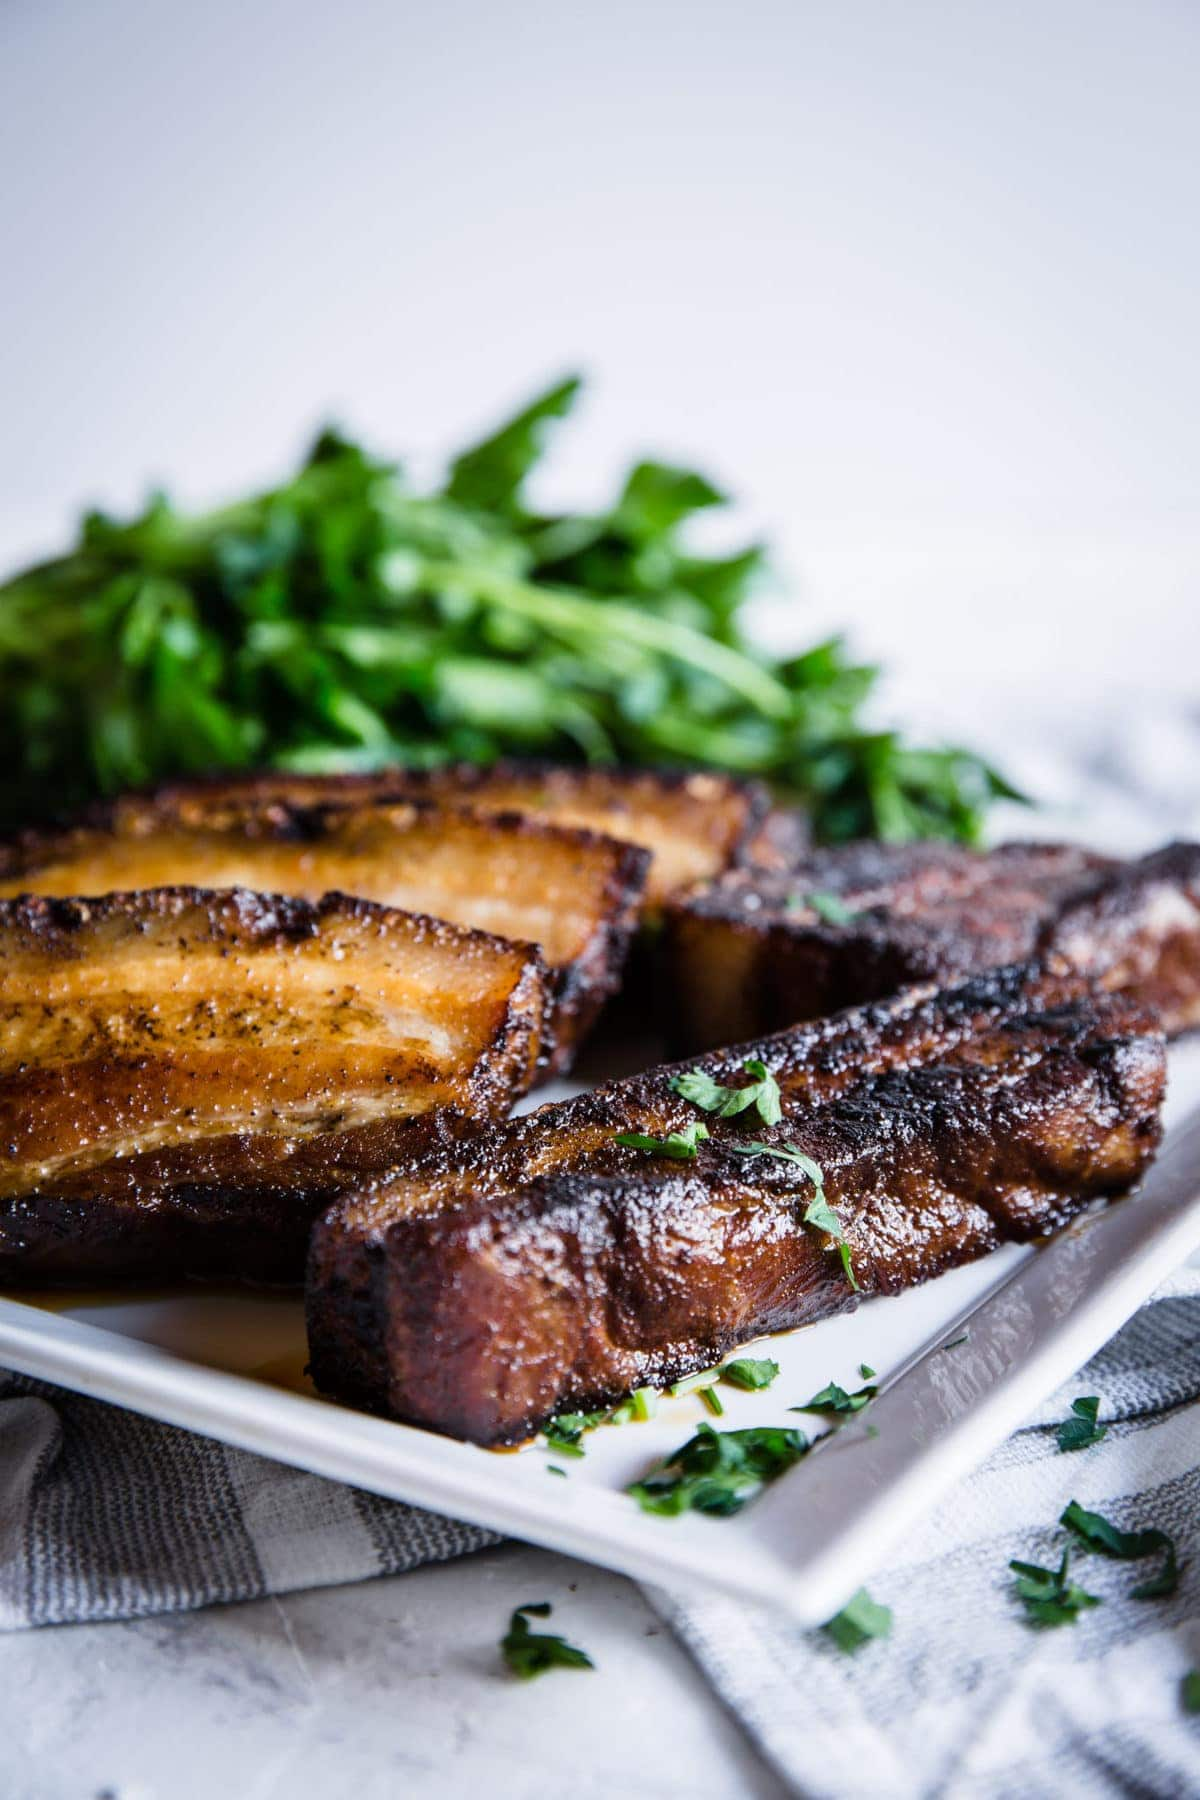 crispy sliced pork belly on a white plate, served with fresh greens